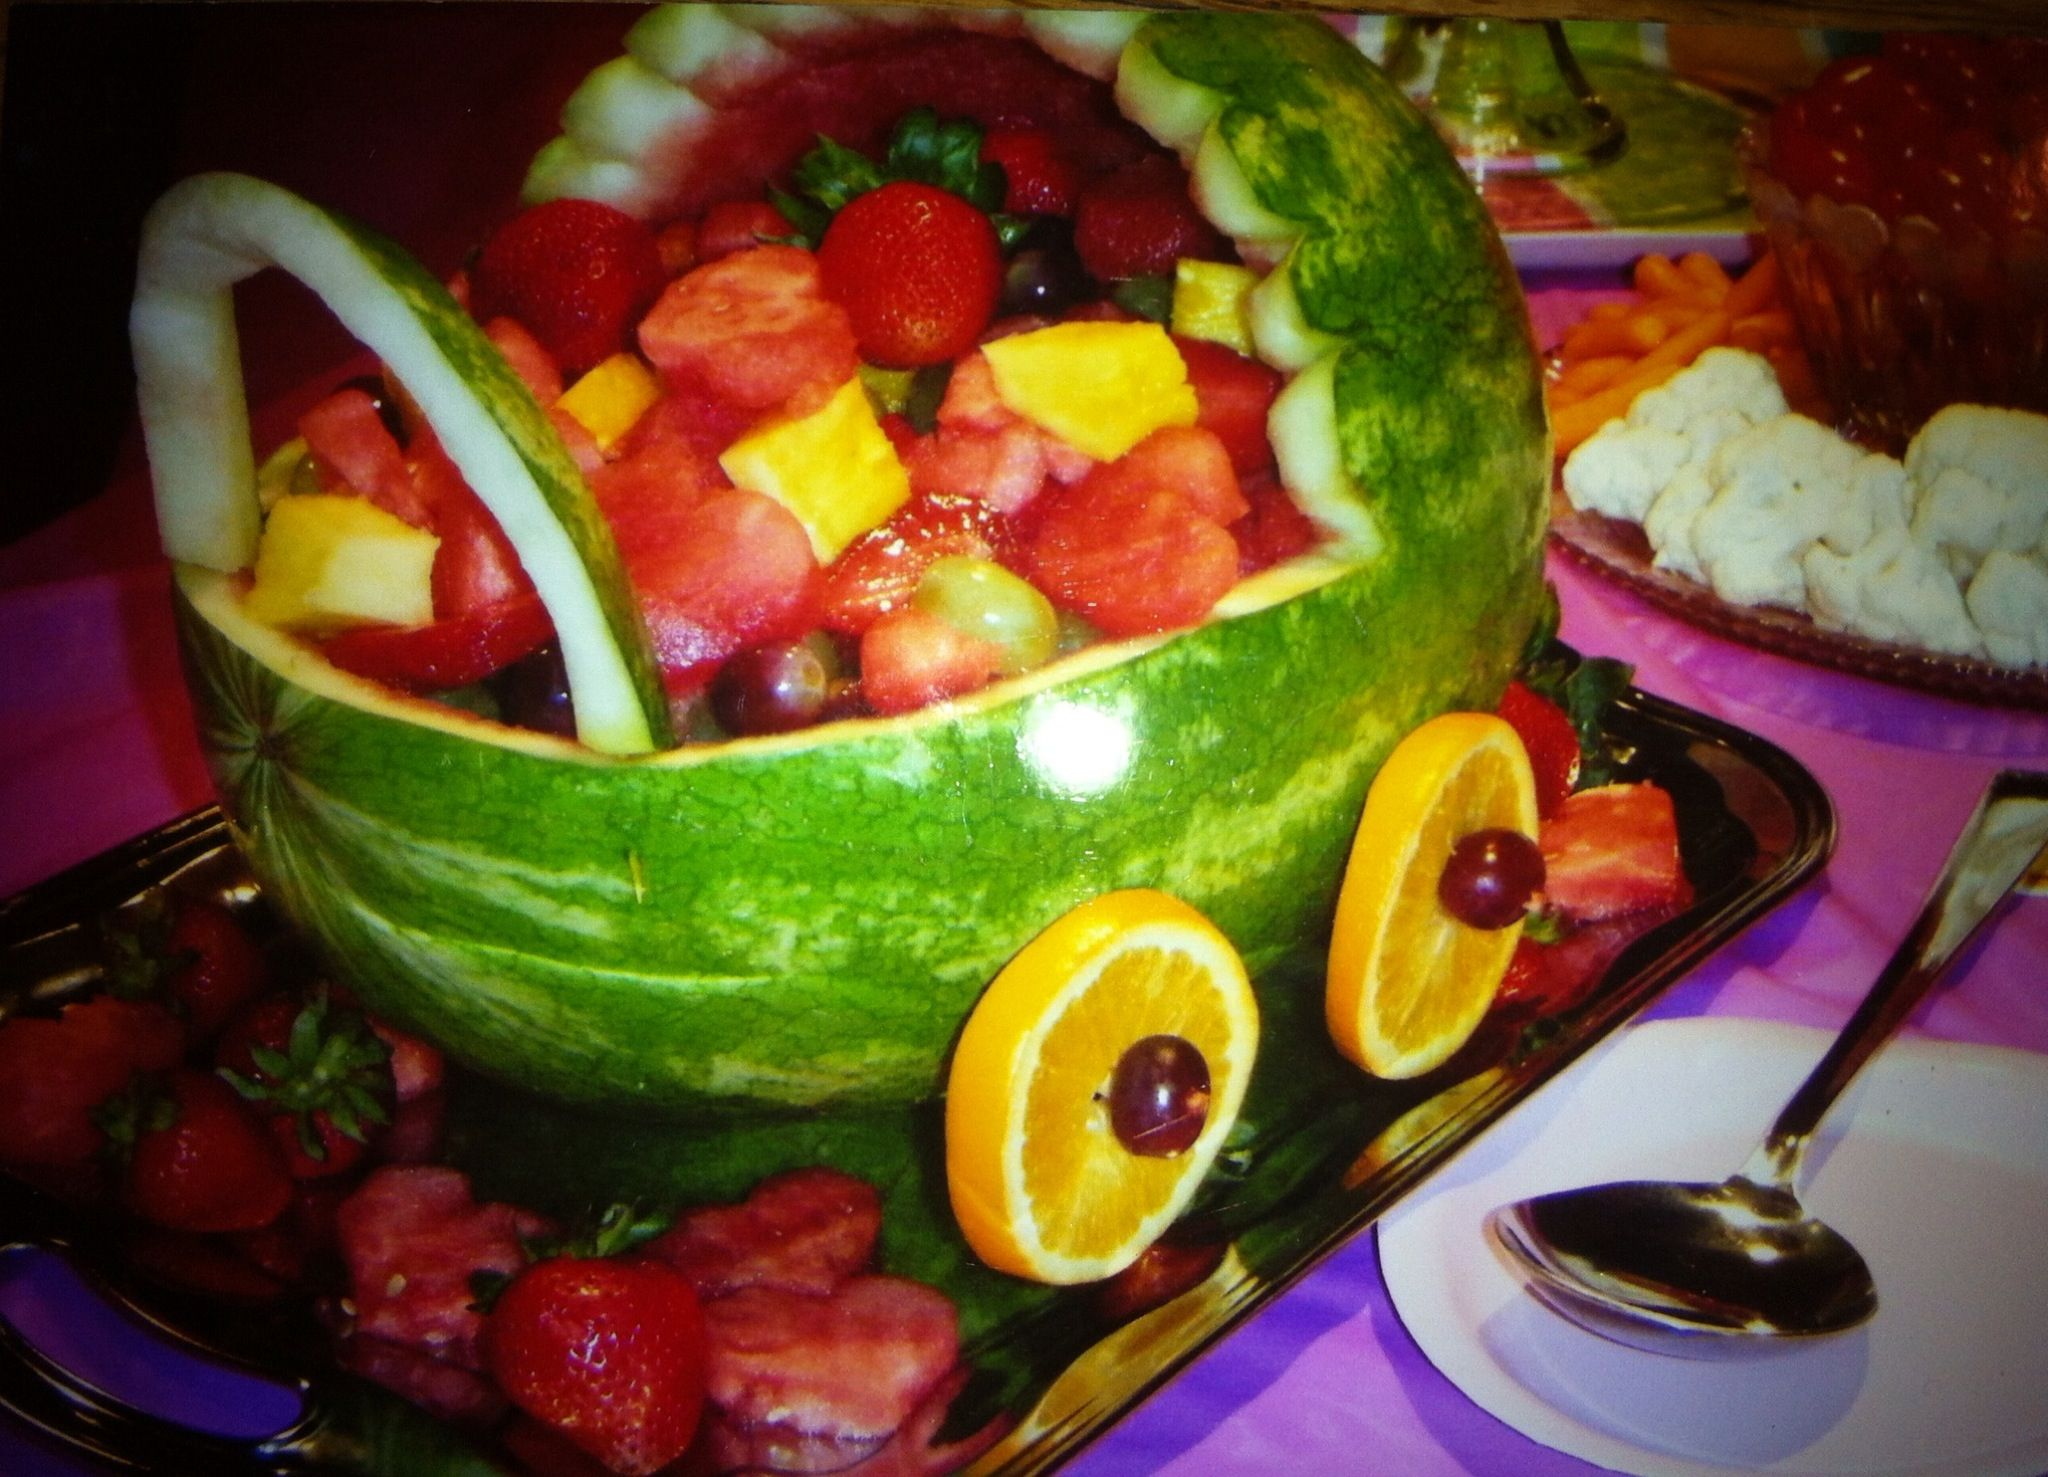 Baby Buggy Watermelon Basketgreat Centerpiece And Serves Well With Cup